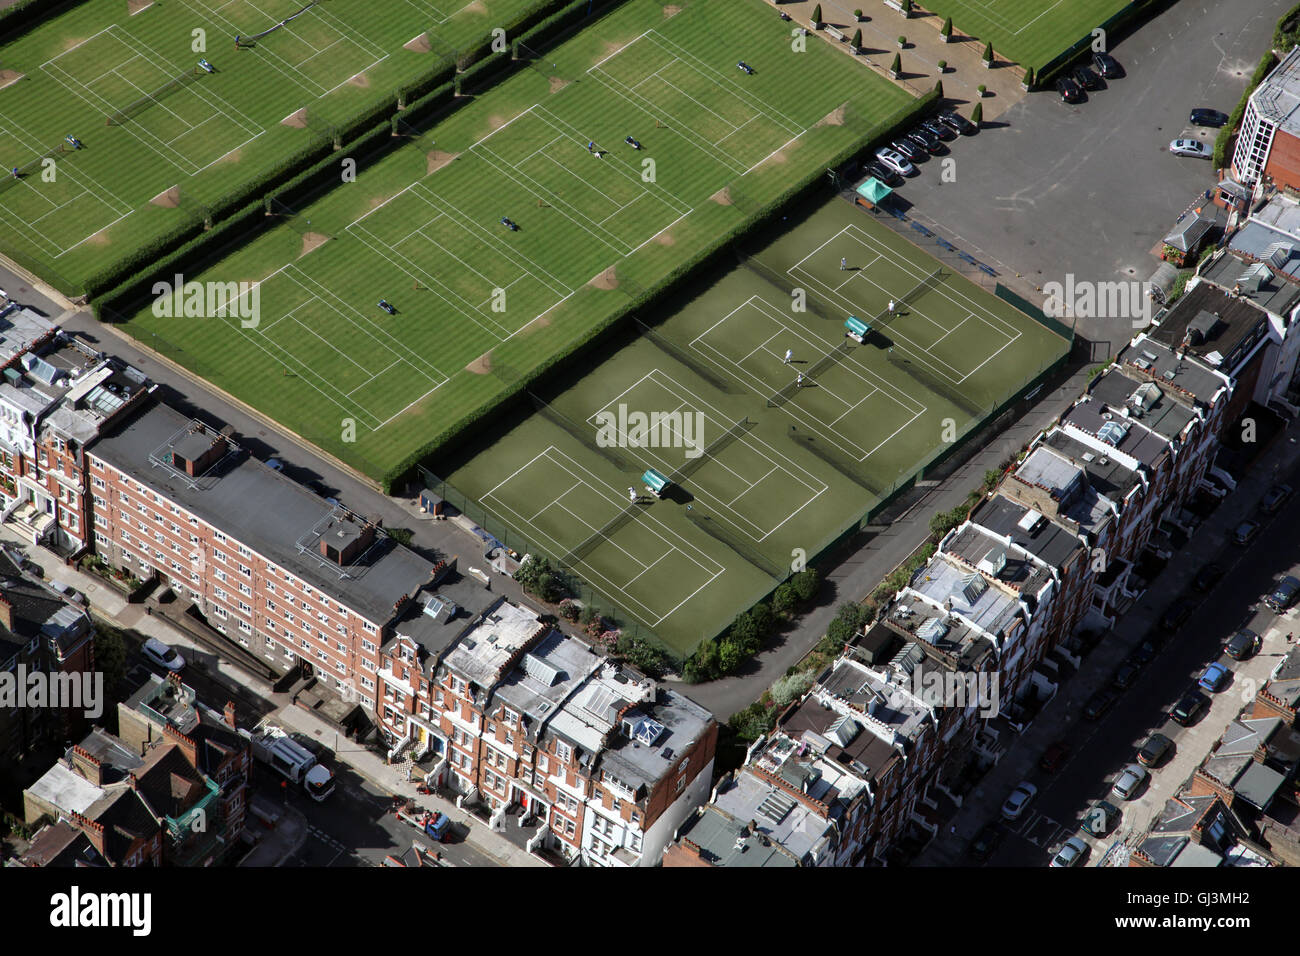 aerial view of The Queens Club tennis courts in West London, UK - Stock Image